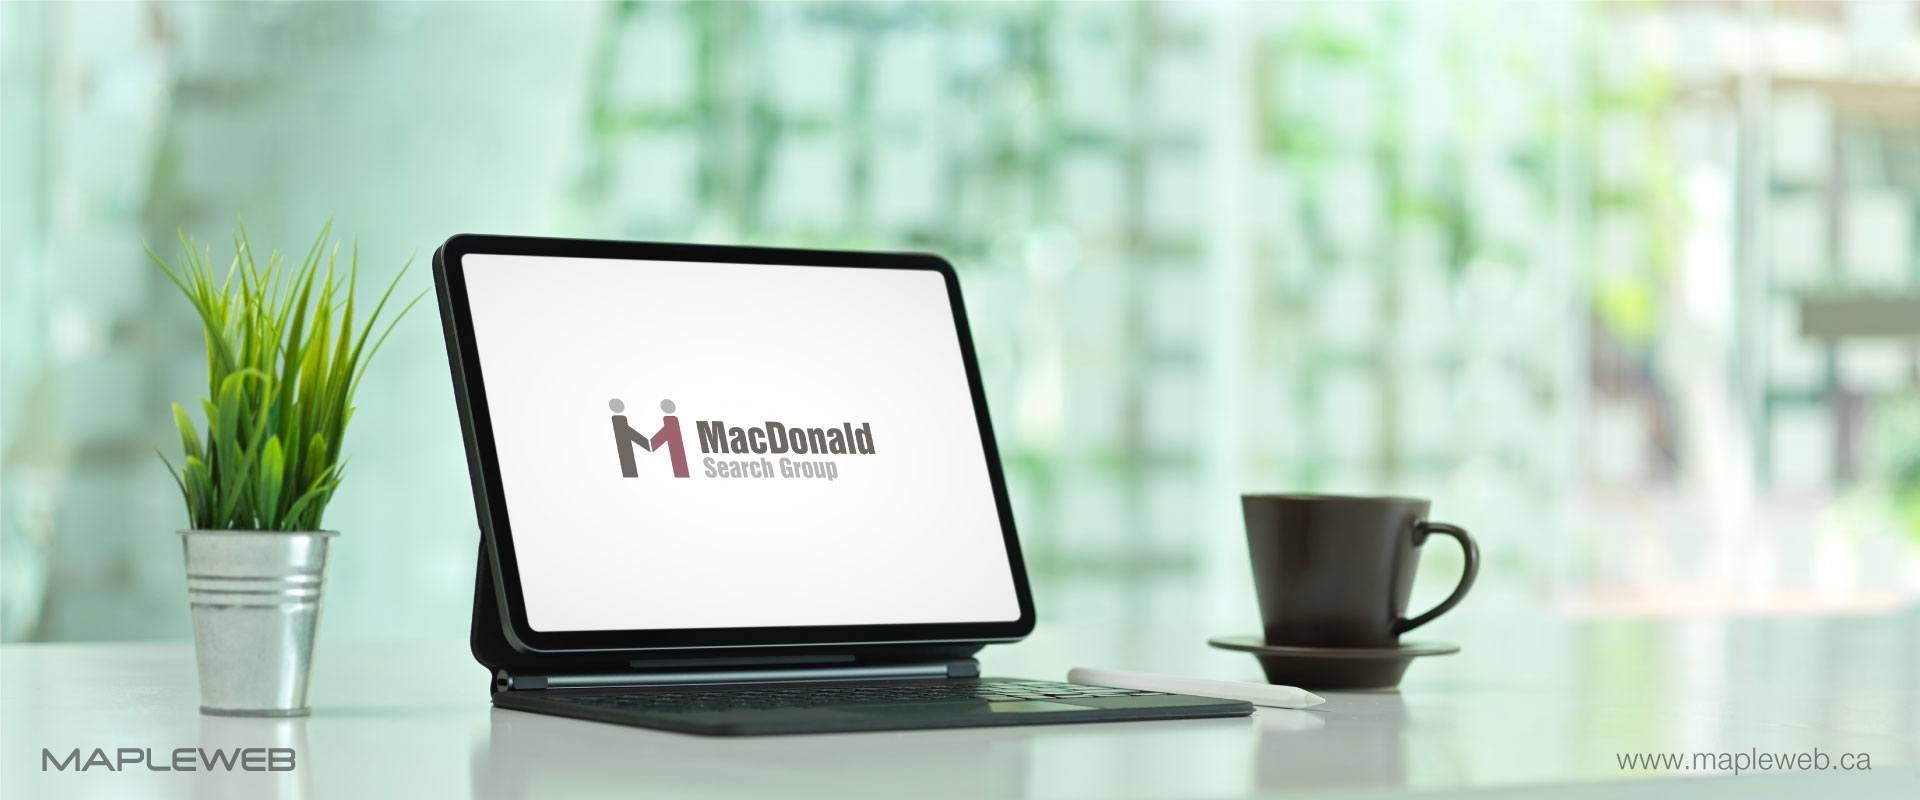 macdonald-search-group-brand-logo-design-by-mapleweb-vancouver-canada-laptop.-mock